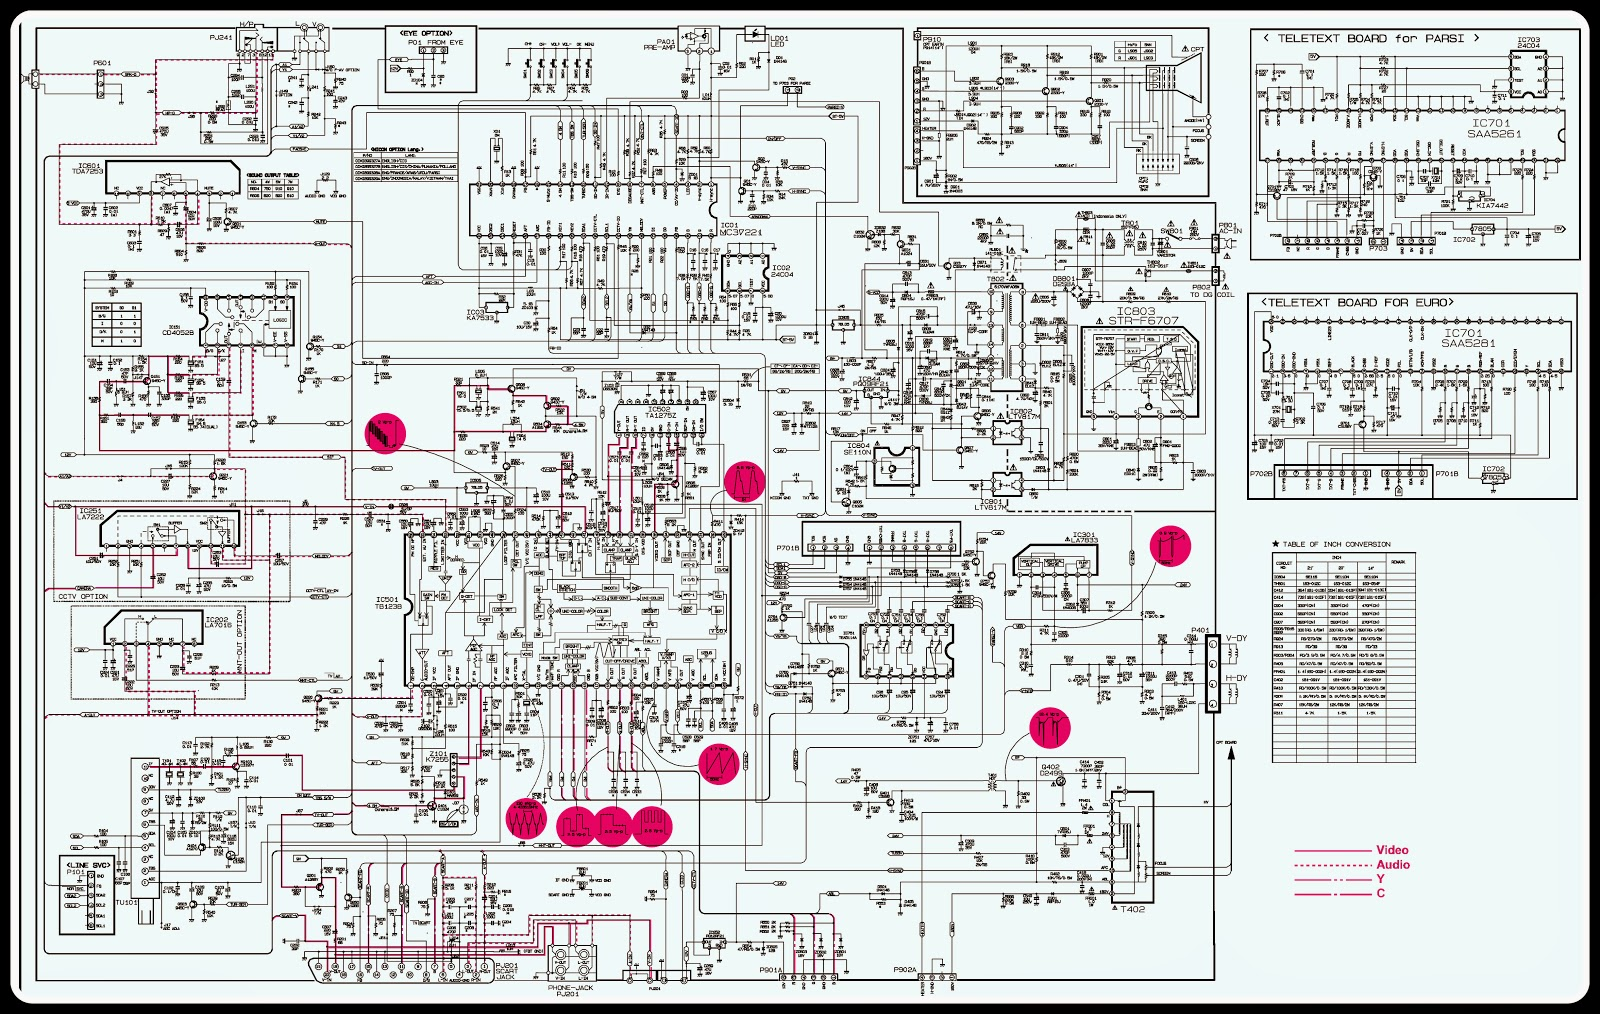 hight resolution of lg tv schematic diagram furthermore led tv schematic diagram on tv besides samsung tv service manual on lg tv schematic diagram